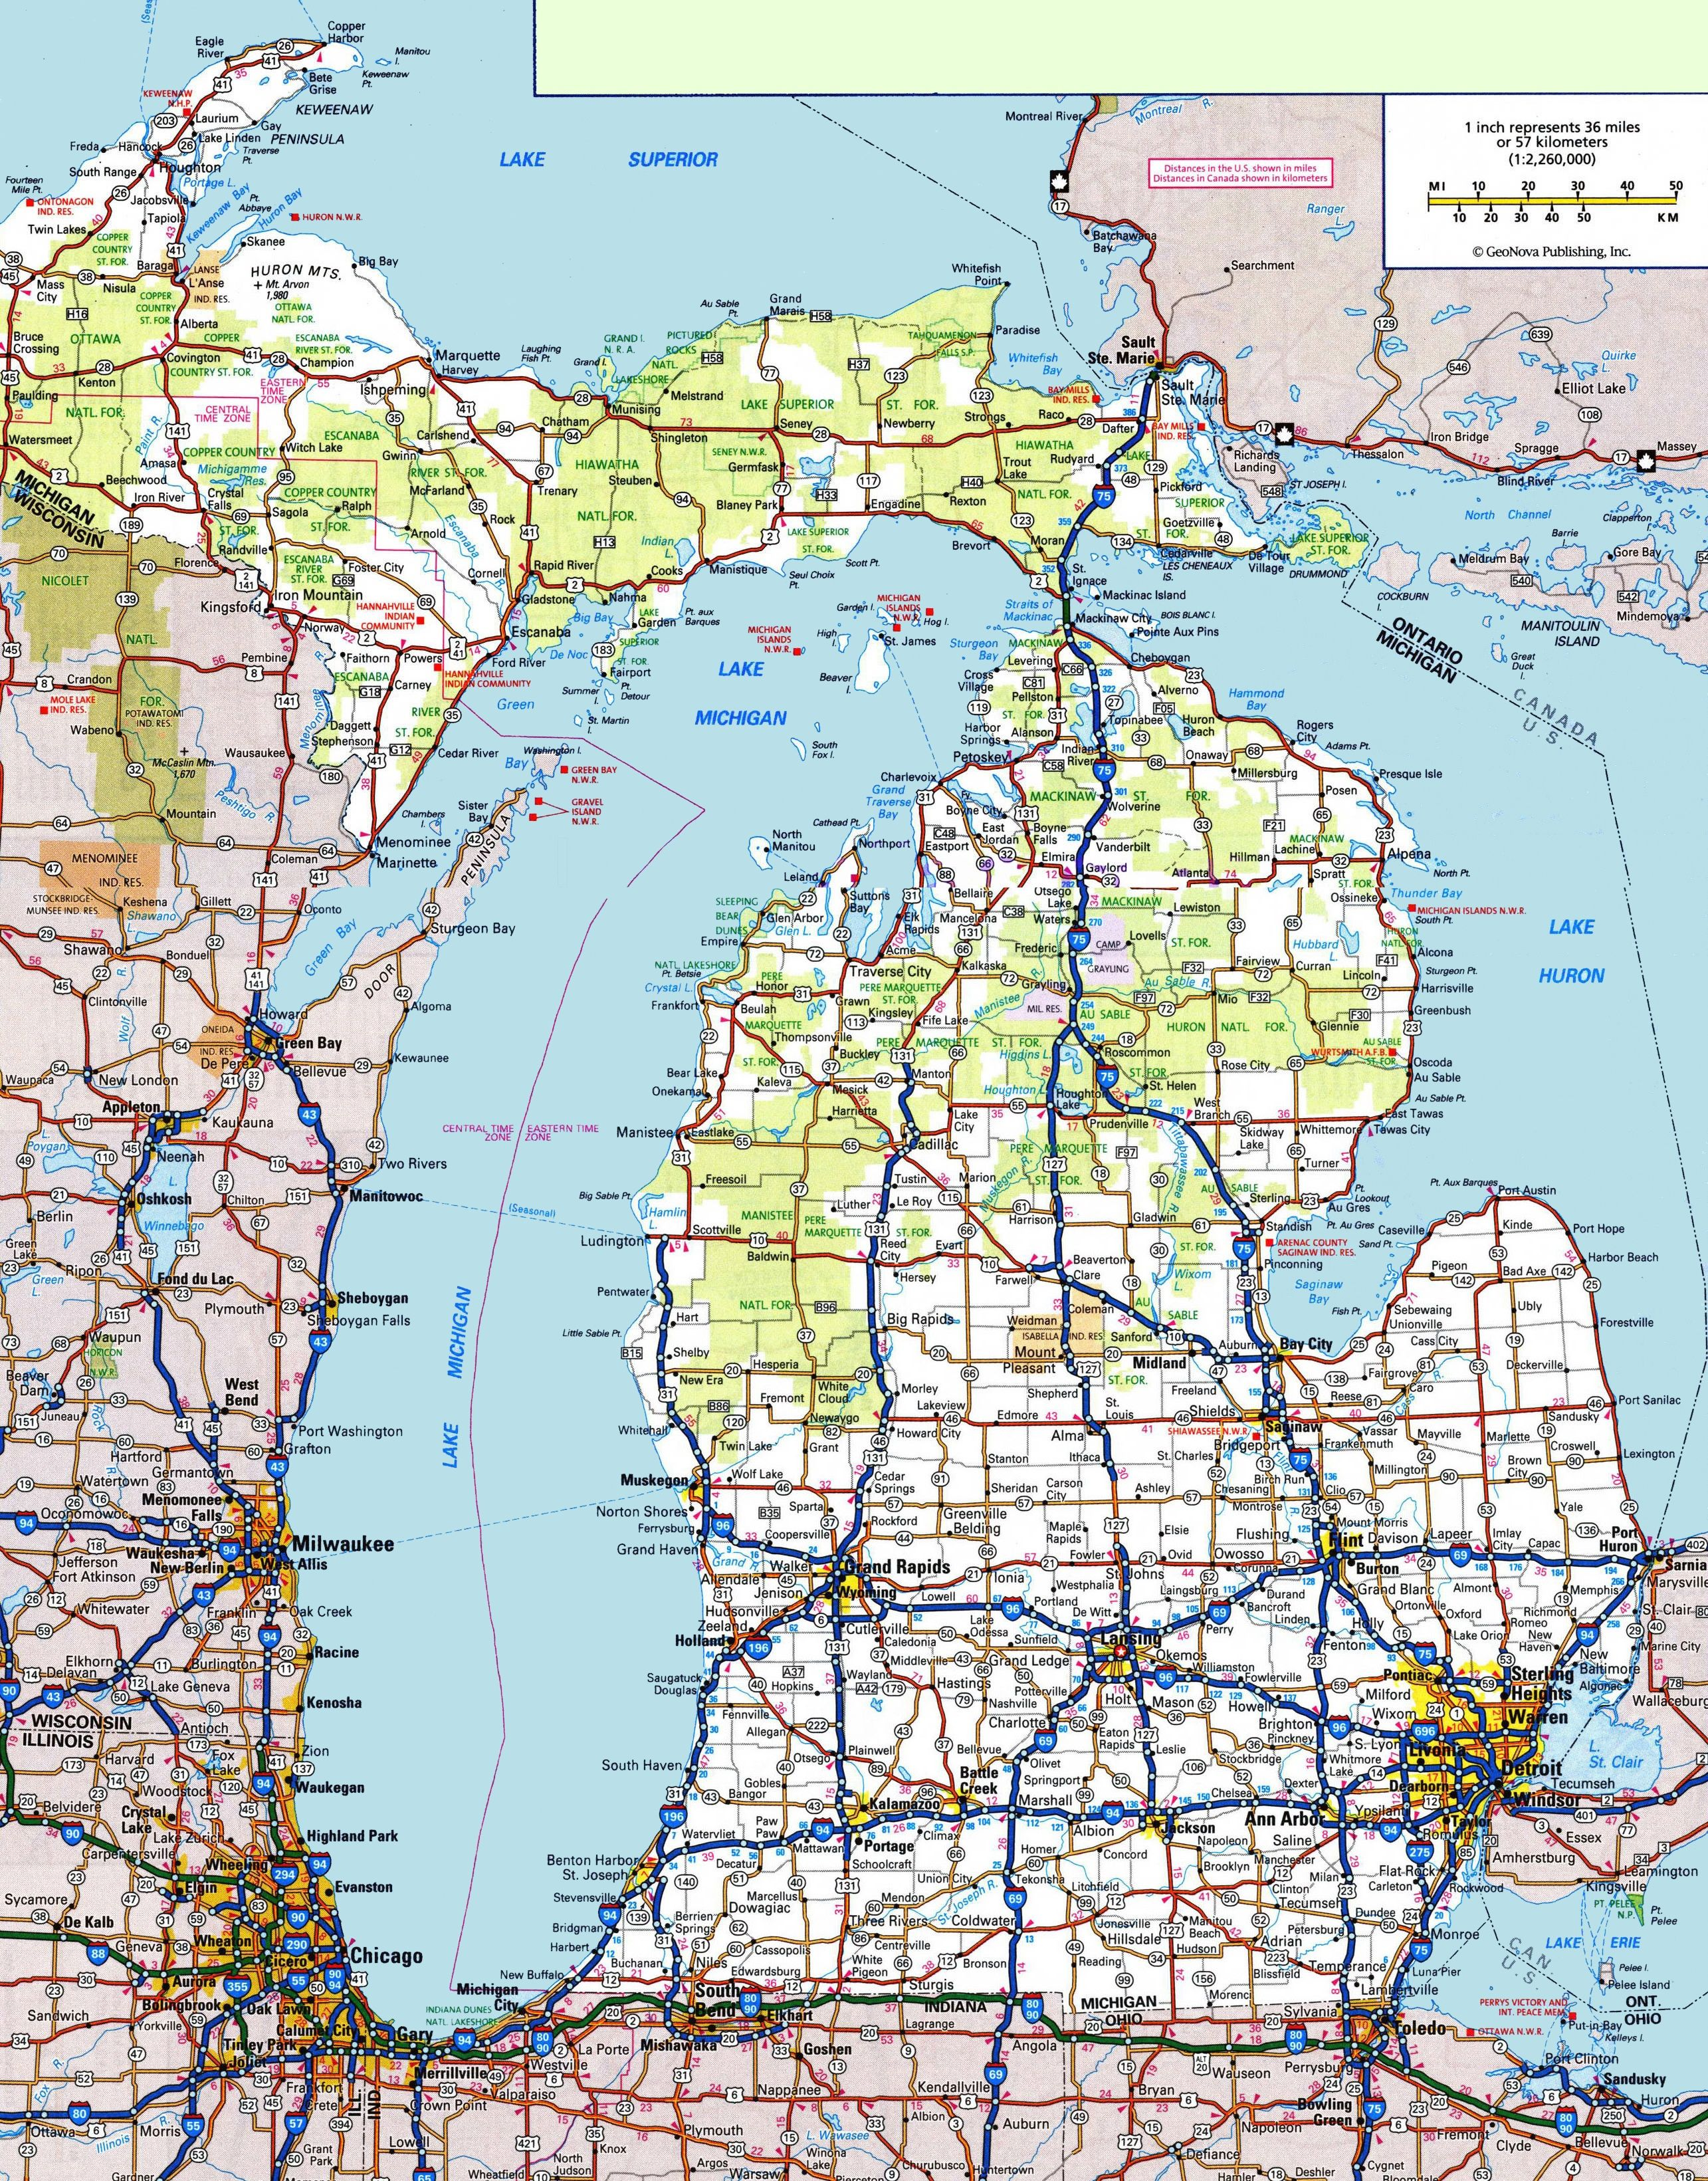 Pin By Kris Vandehei On Places I D Like To Go Pinterest Michigan